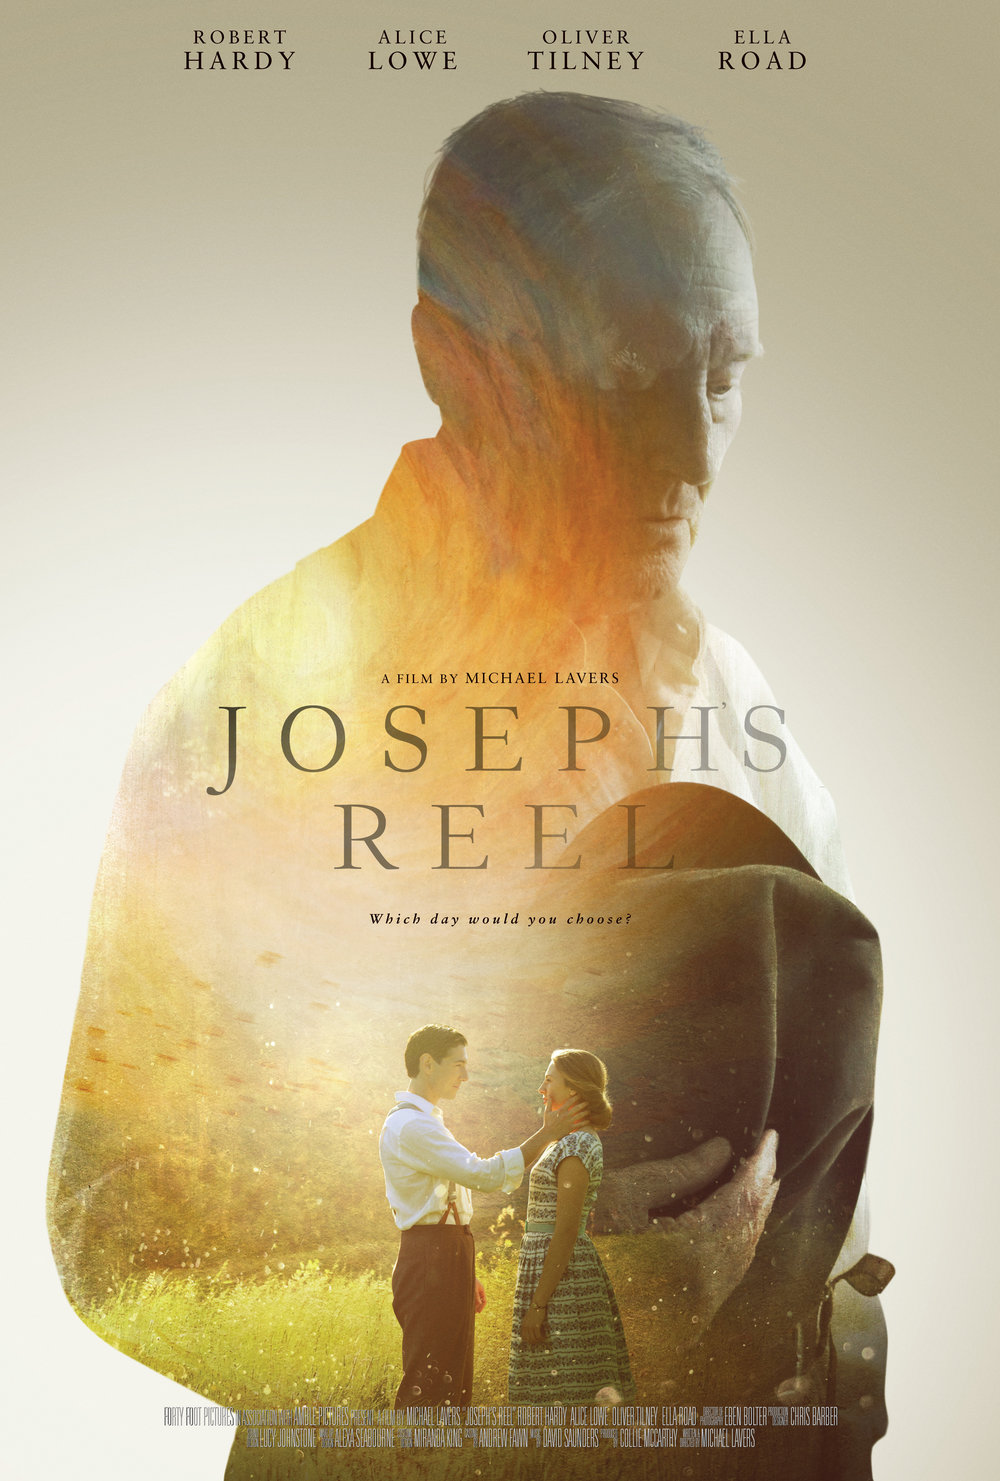 JOSEPH'S REEL - Romance, Fantasy, Drama. 14mins.An elderly man, upon dying, is given the opportunity to relive one day of his life.Writer/Director: Michael Lavers.Cast: Robert Hardy, Oliver Tilney, Alice Lowe, Ella Road.World Premiere at Palm Springs International Shortfest 2015. Further festival selections: Aesthetica, Galway, Cork.